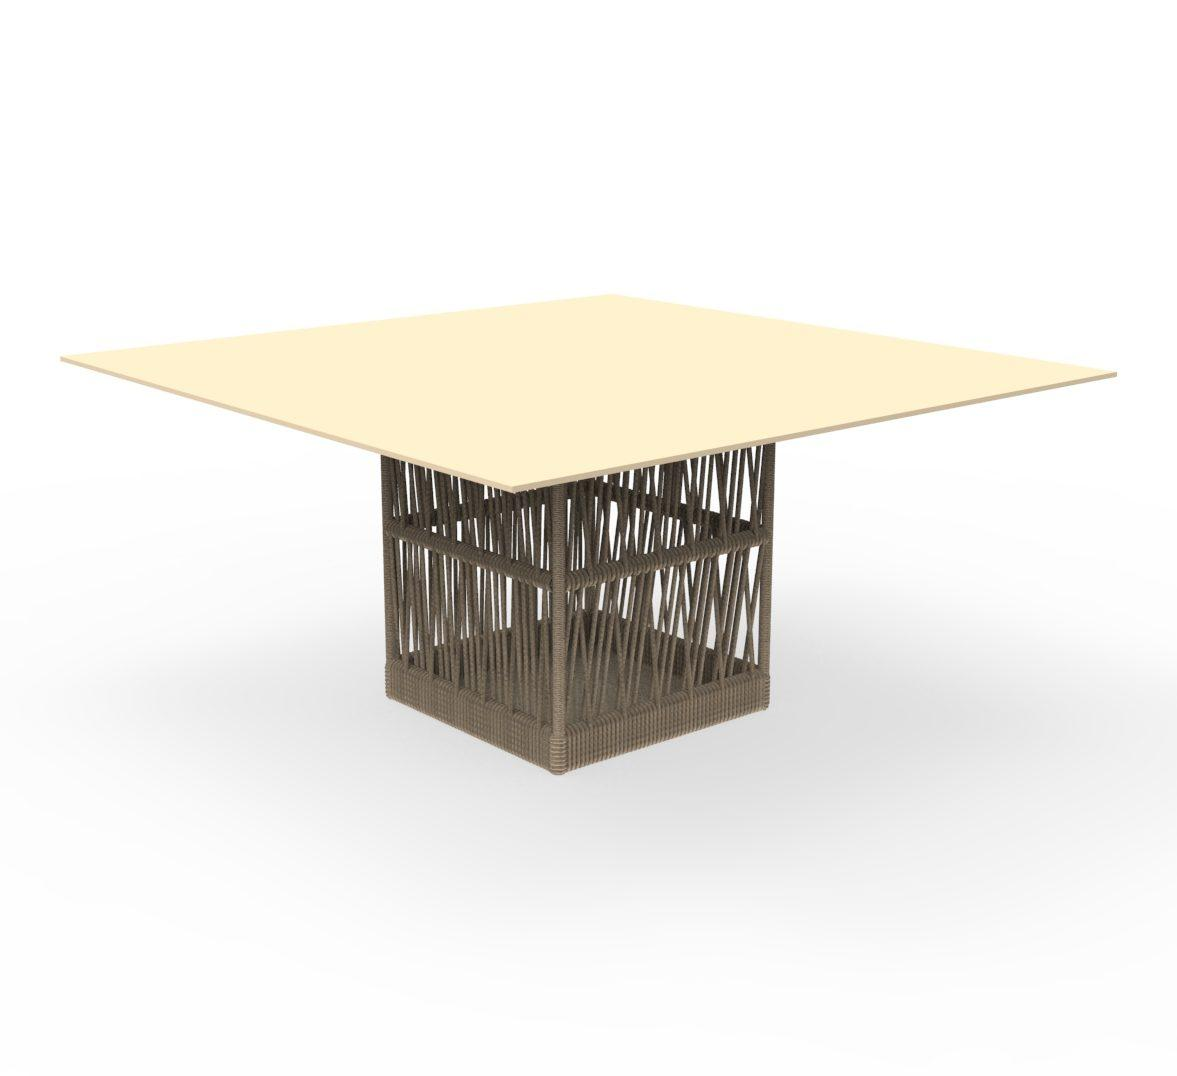 CLIFF SQUARE DINING TABLE